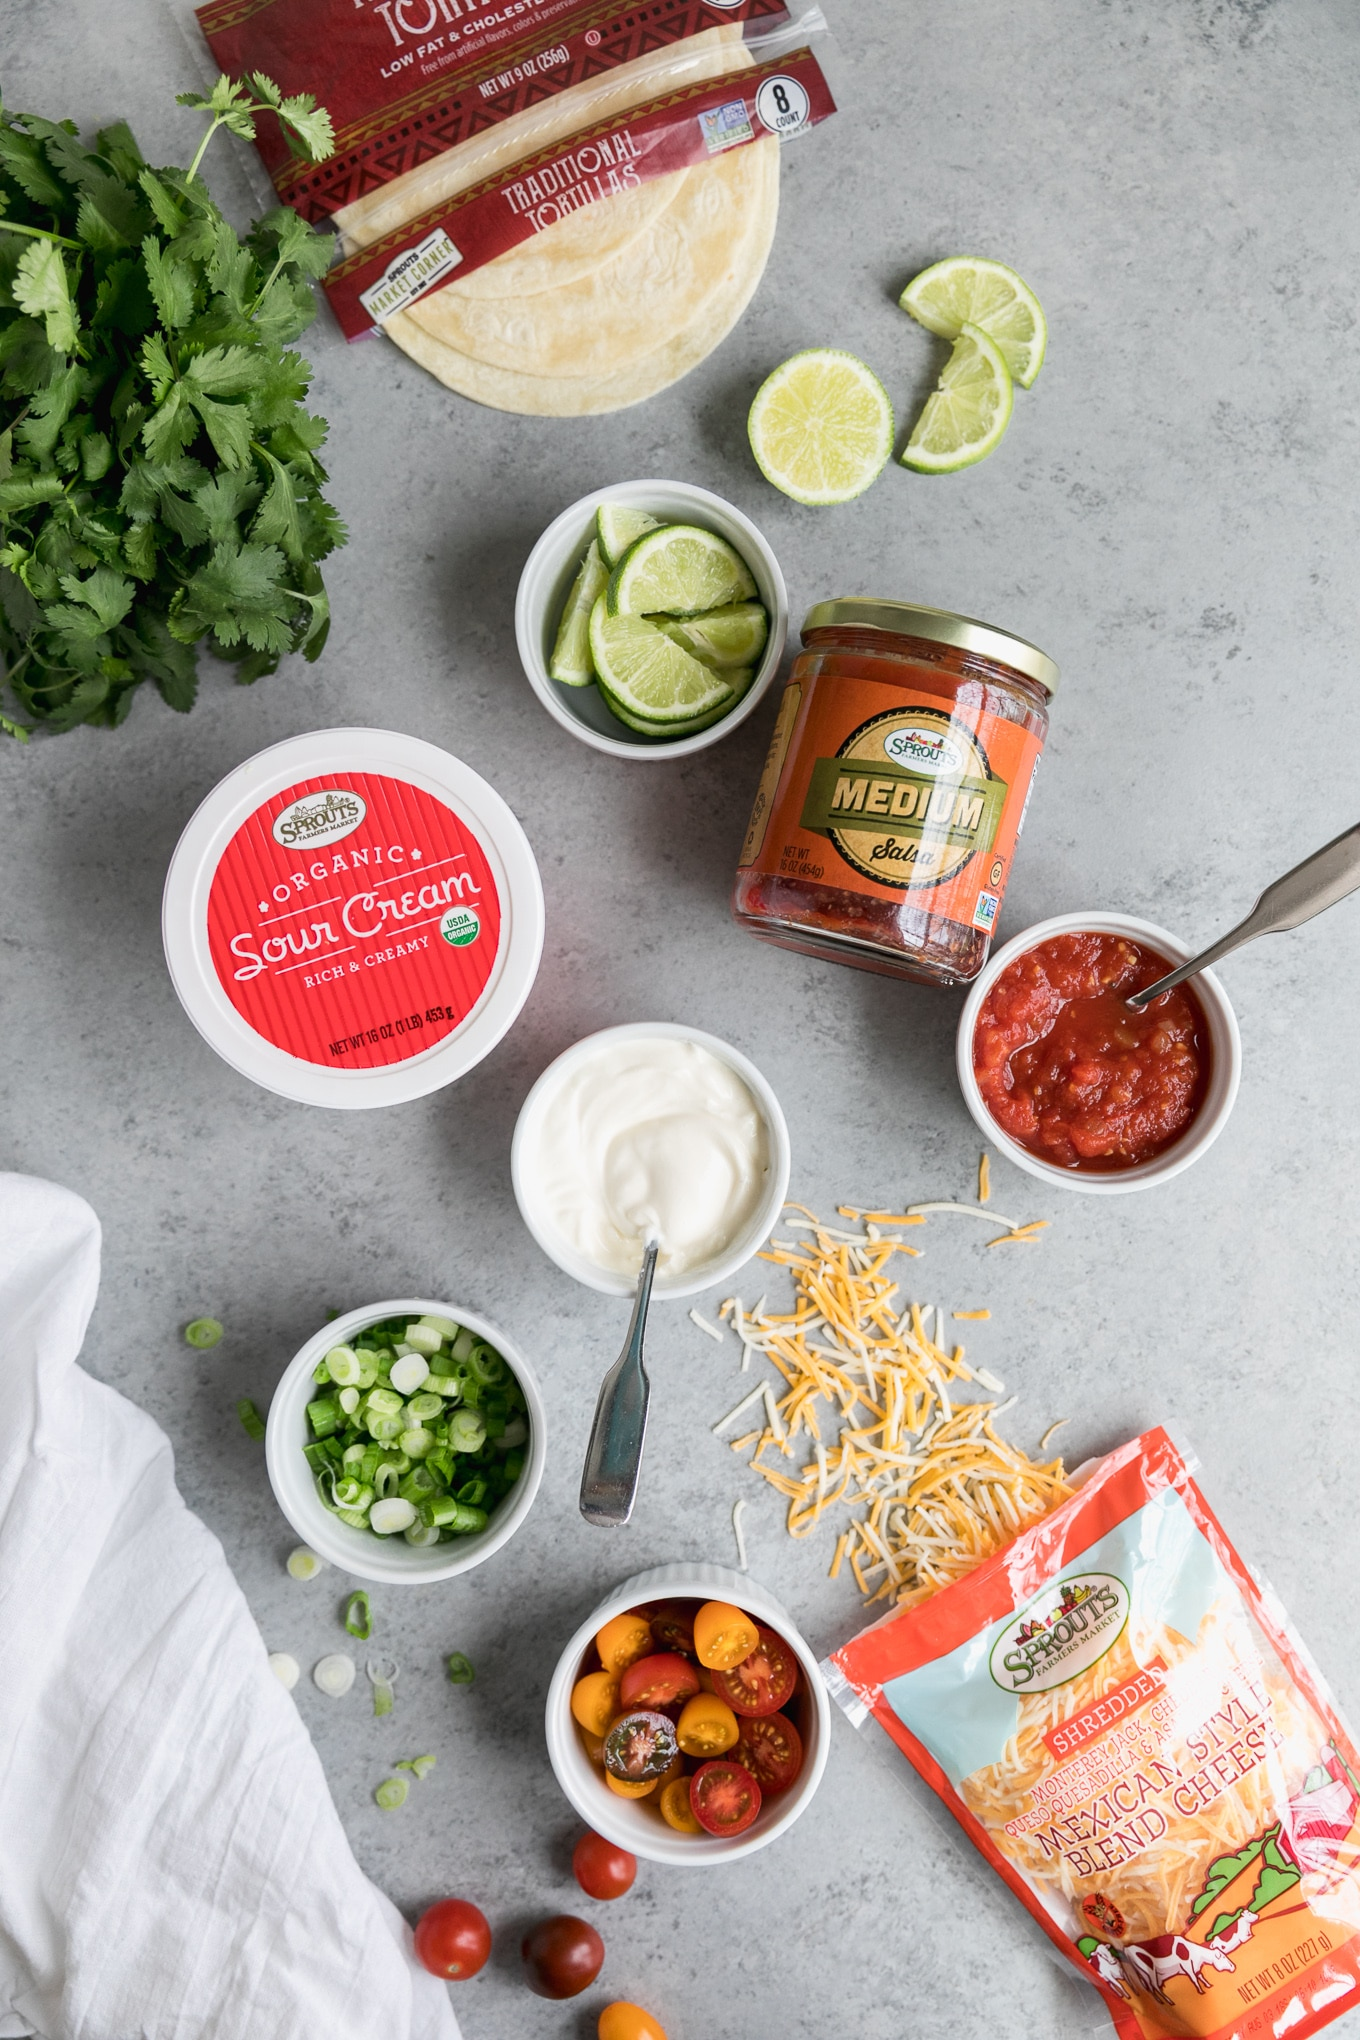 Overhead shot of small bowls filled with lime slices, sour cream, salsa, scallions, multicolored cherry tomatoes, a bag of tortillas, and a container of sour cream and a bag of cheese being spilled out in the bottom right corner